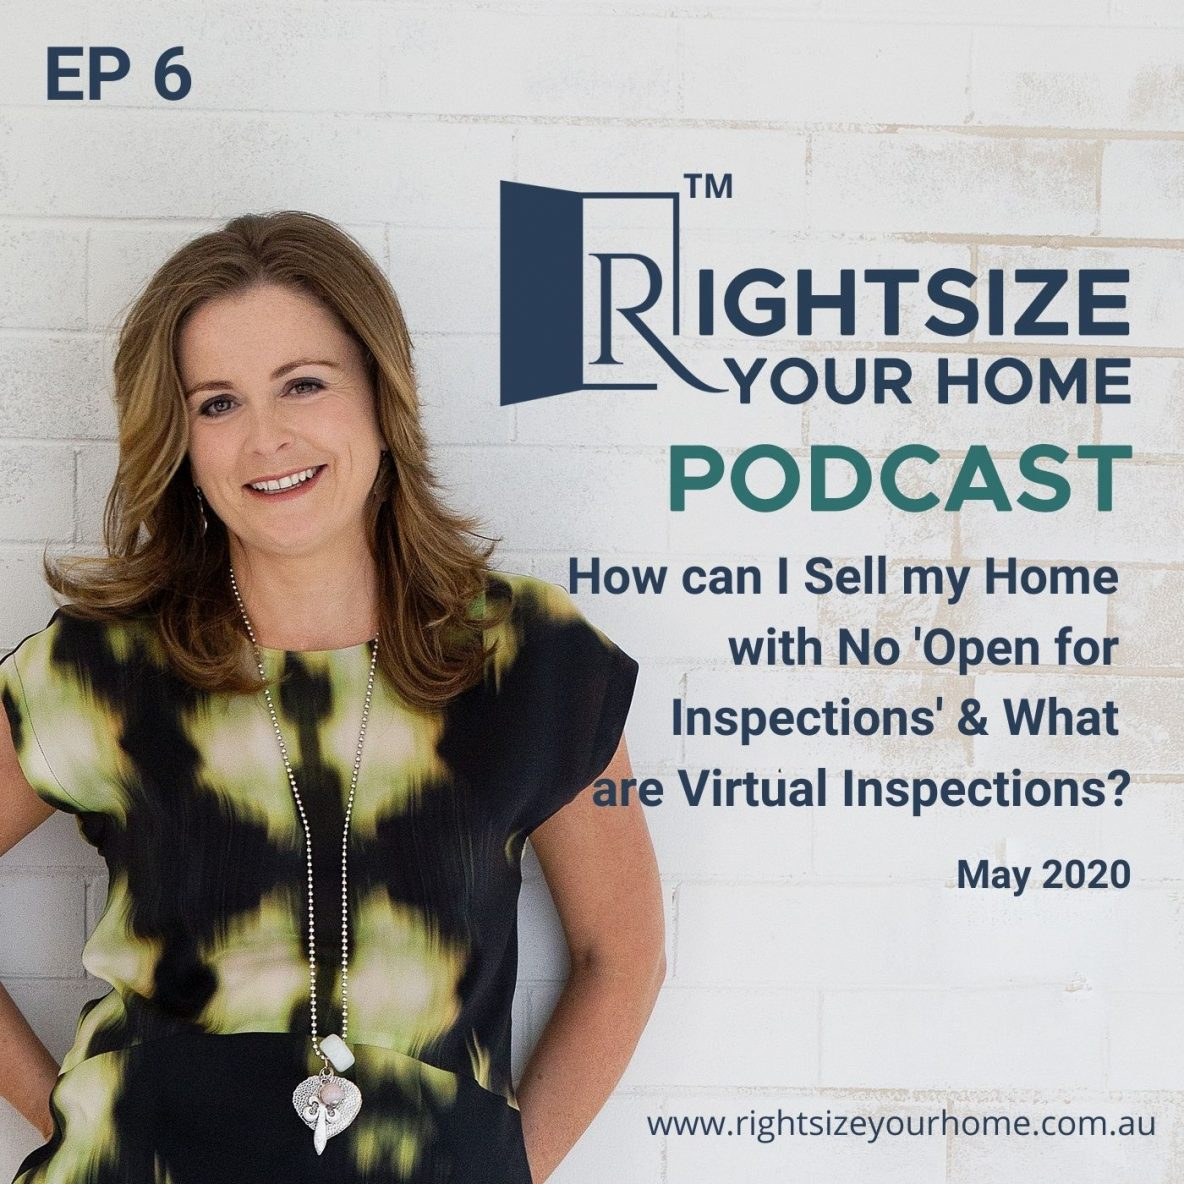 How can I Sell my Home with No 'Open for Inspections' & What are Virtual Inspections?